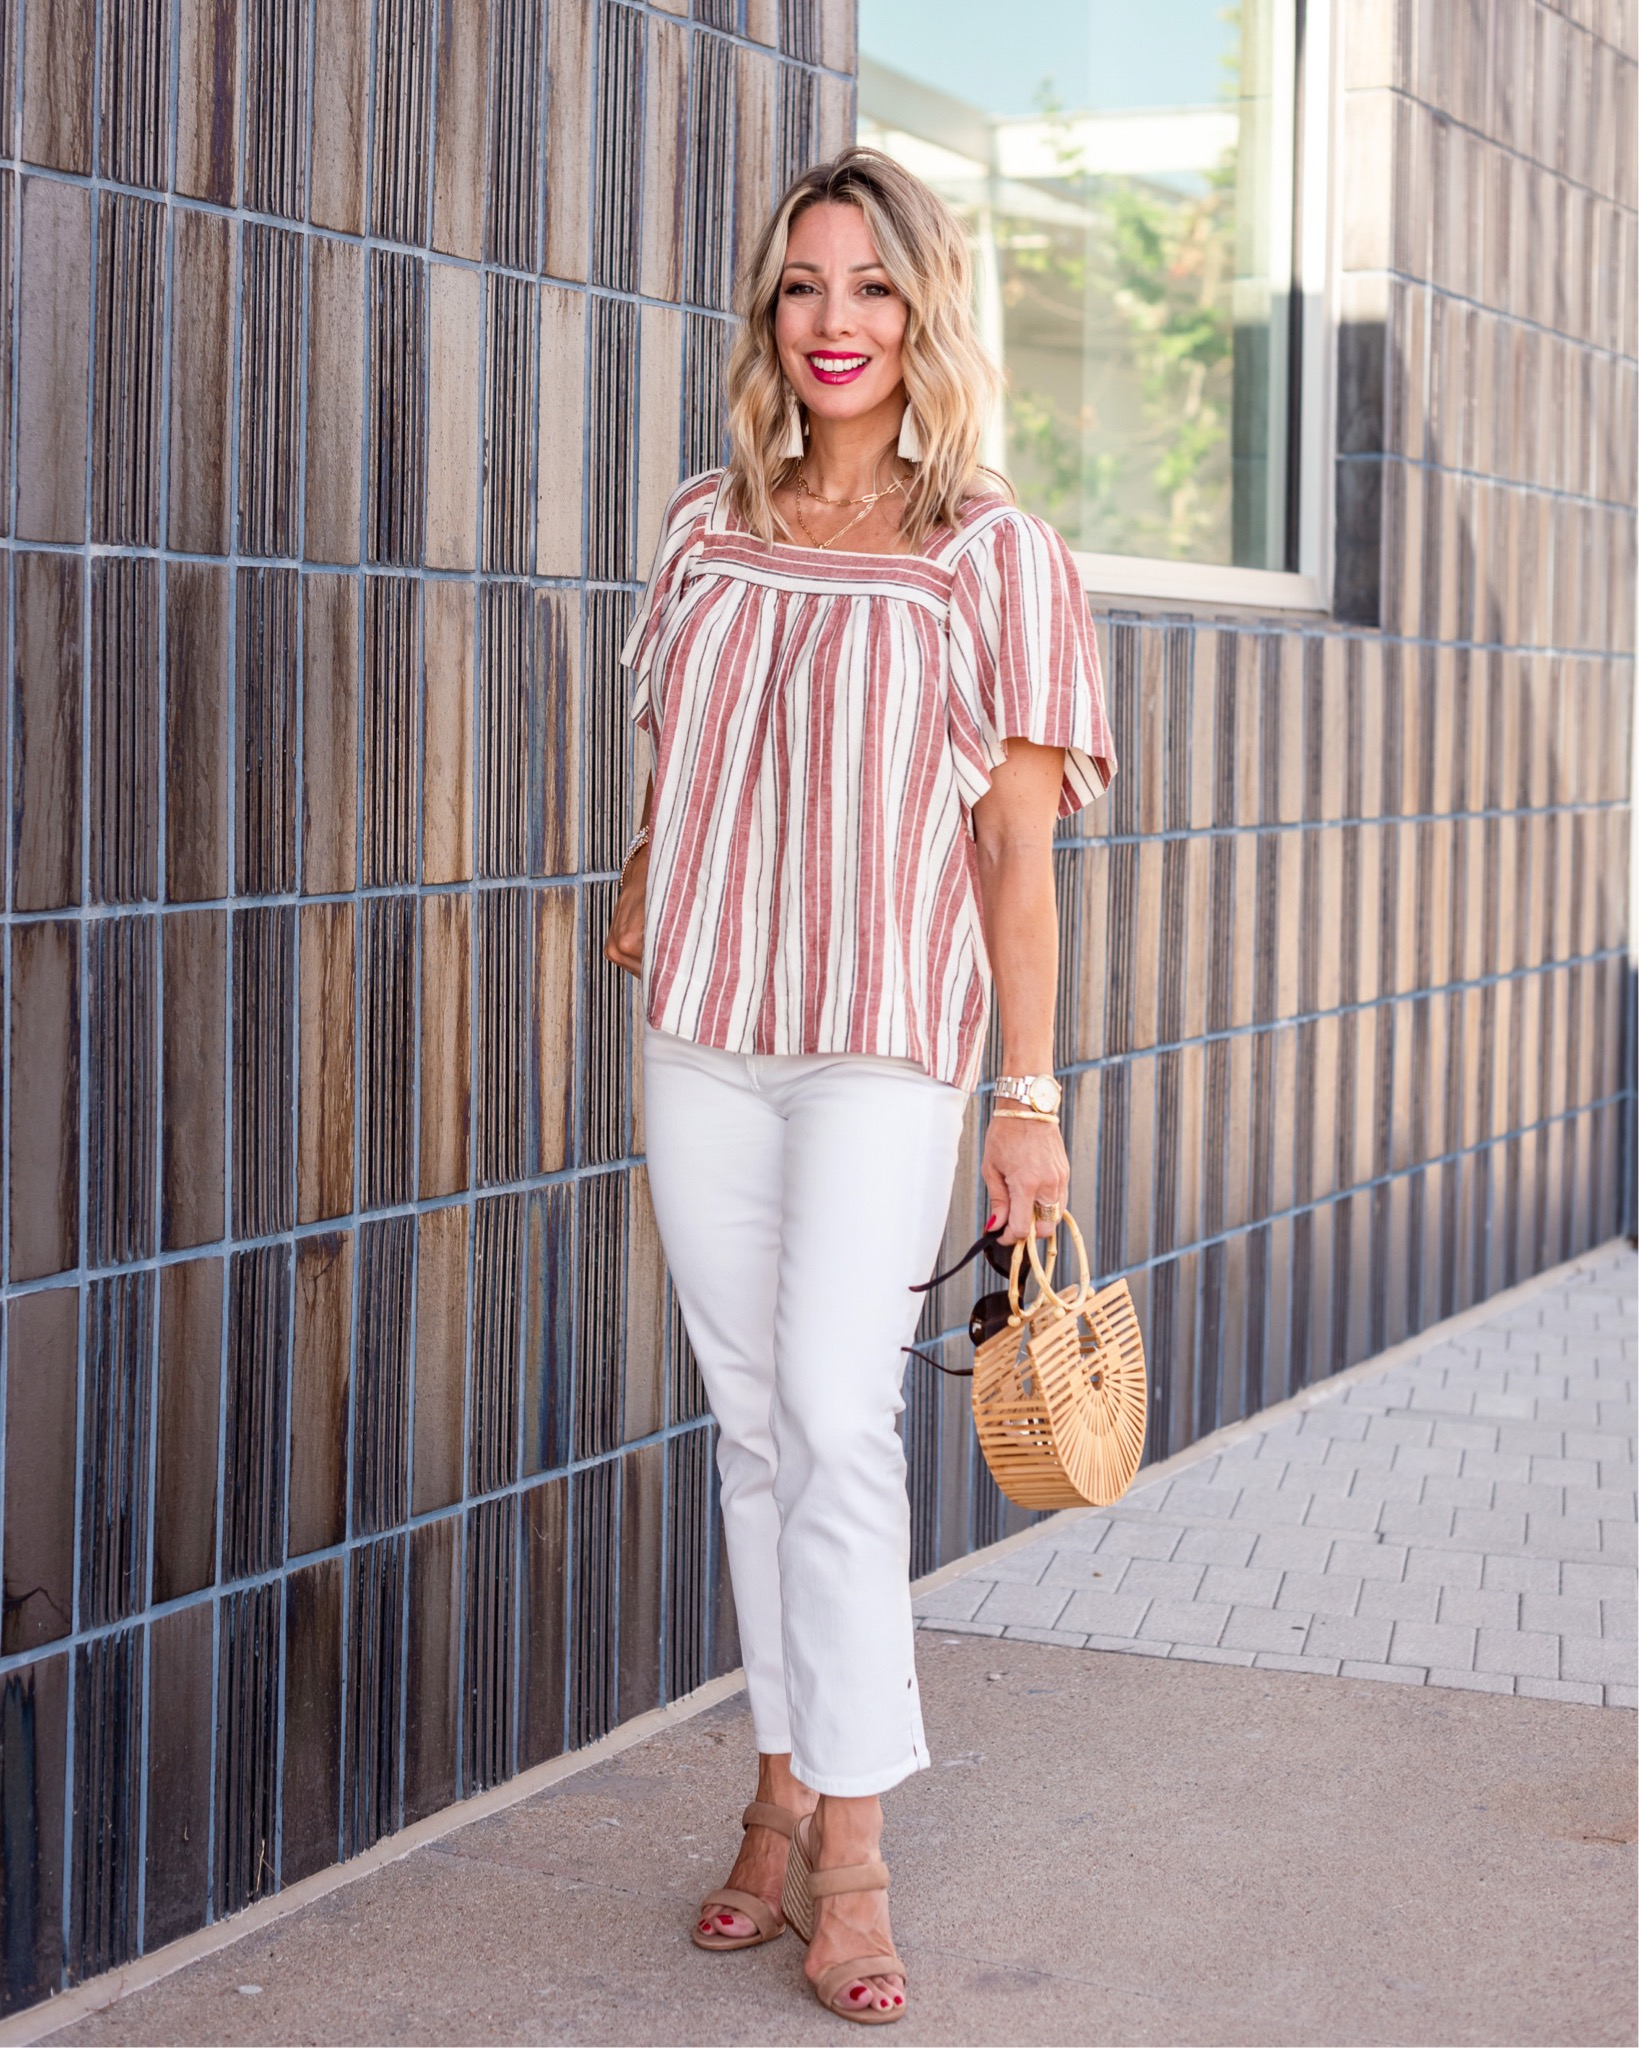 Striped Square Neck Top and White Jeans and Sandals with Bamboo clutch